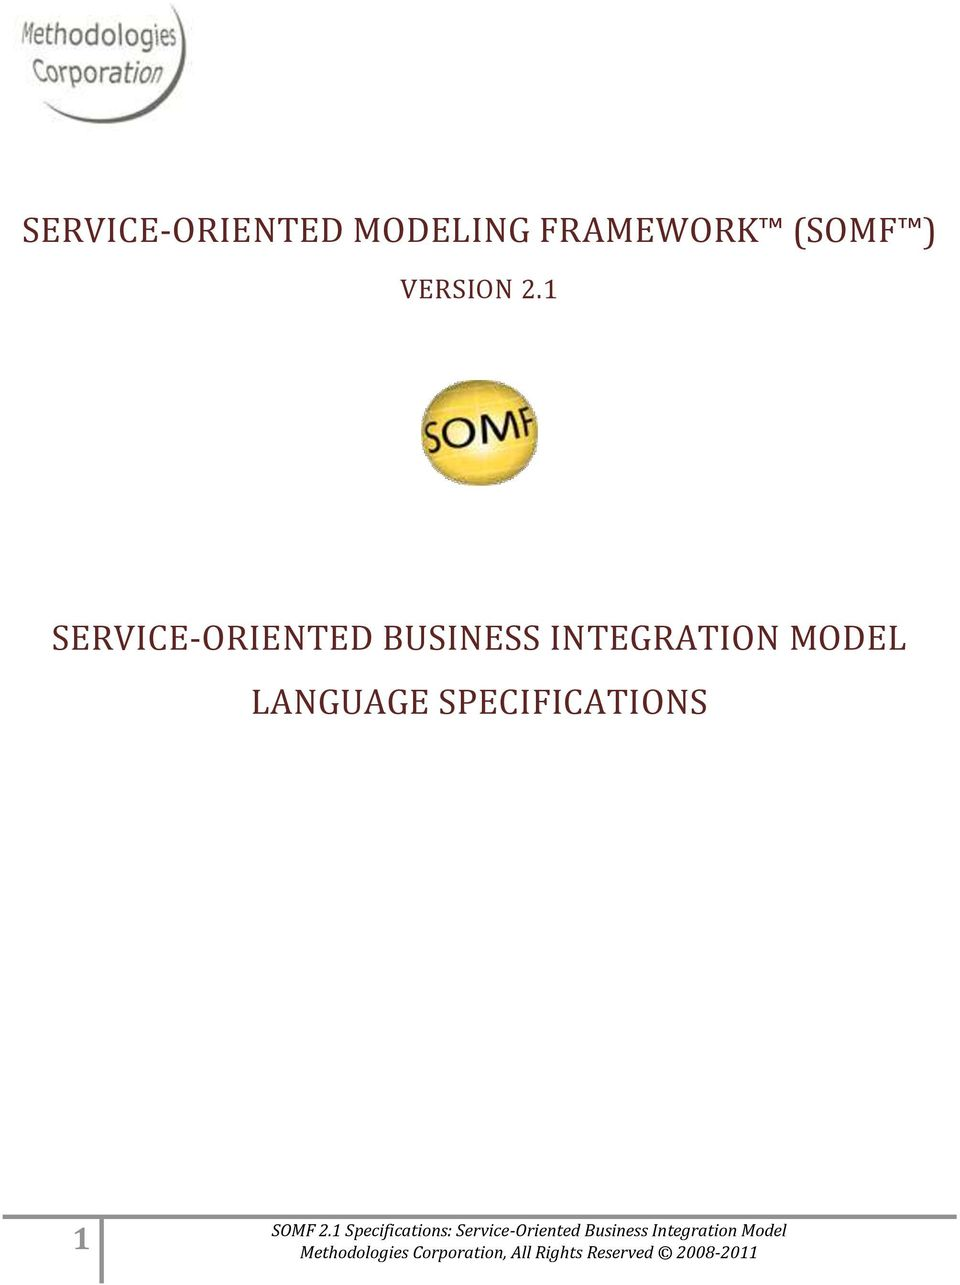 1 SERVICE-ORIENTED BUSINESS